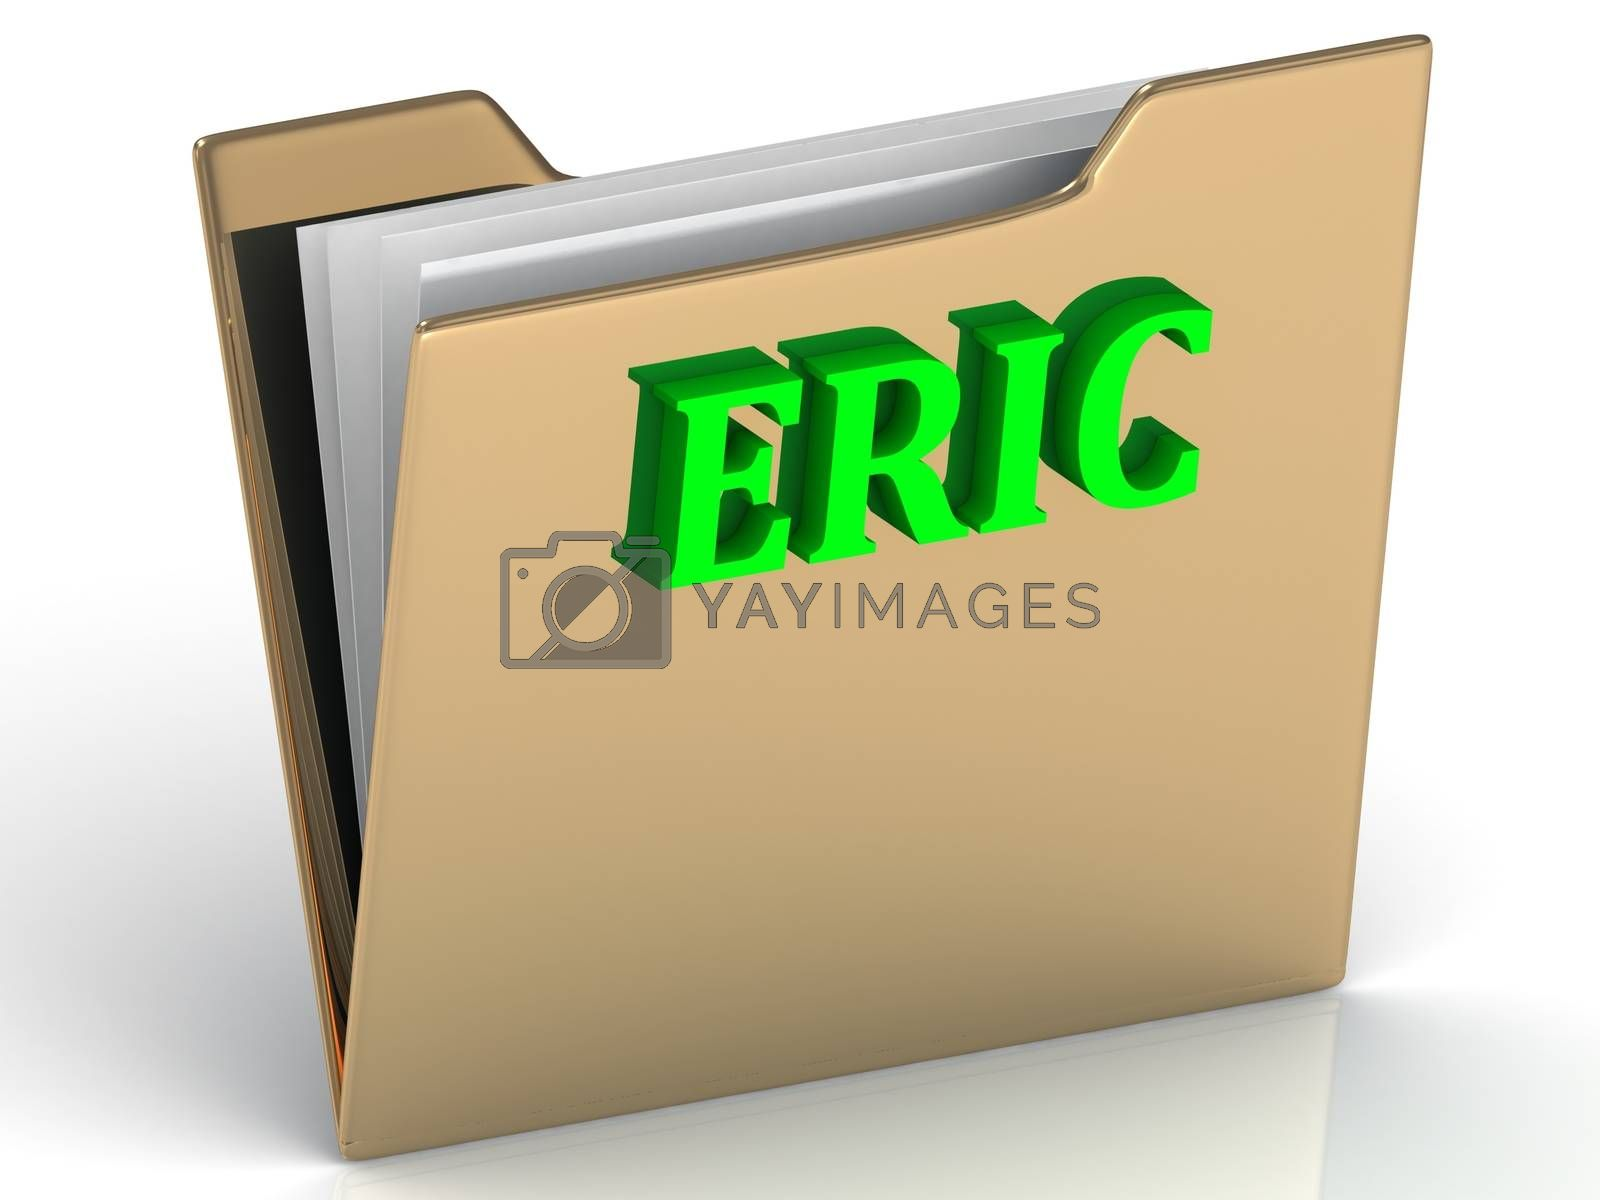 ERIC- Name and Family bright letters on gold folder on a white backgroundERIC- bright green letters on gold paperwork folder on a white background